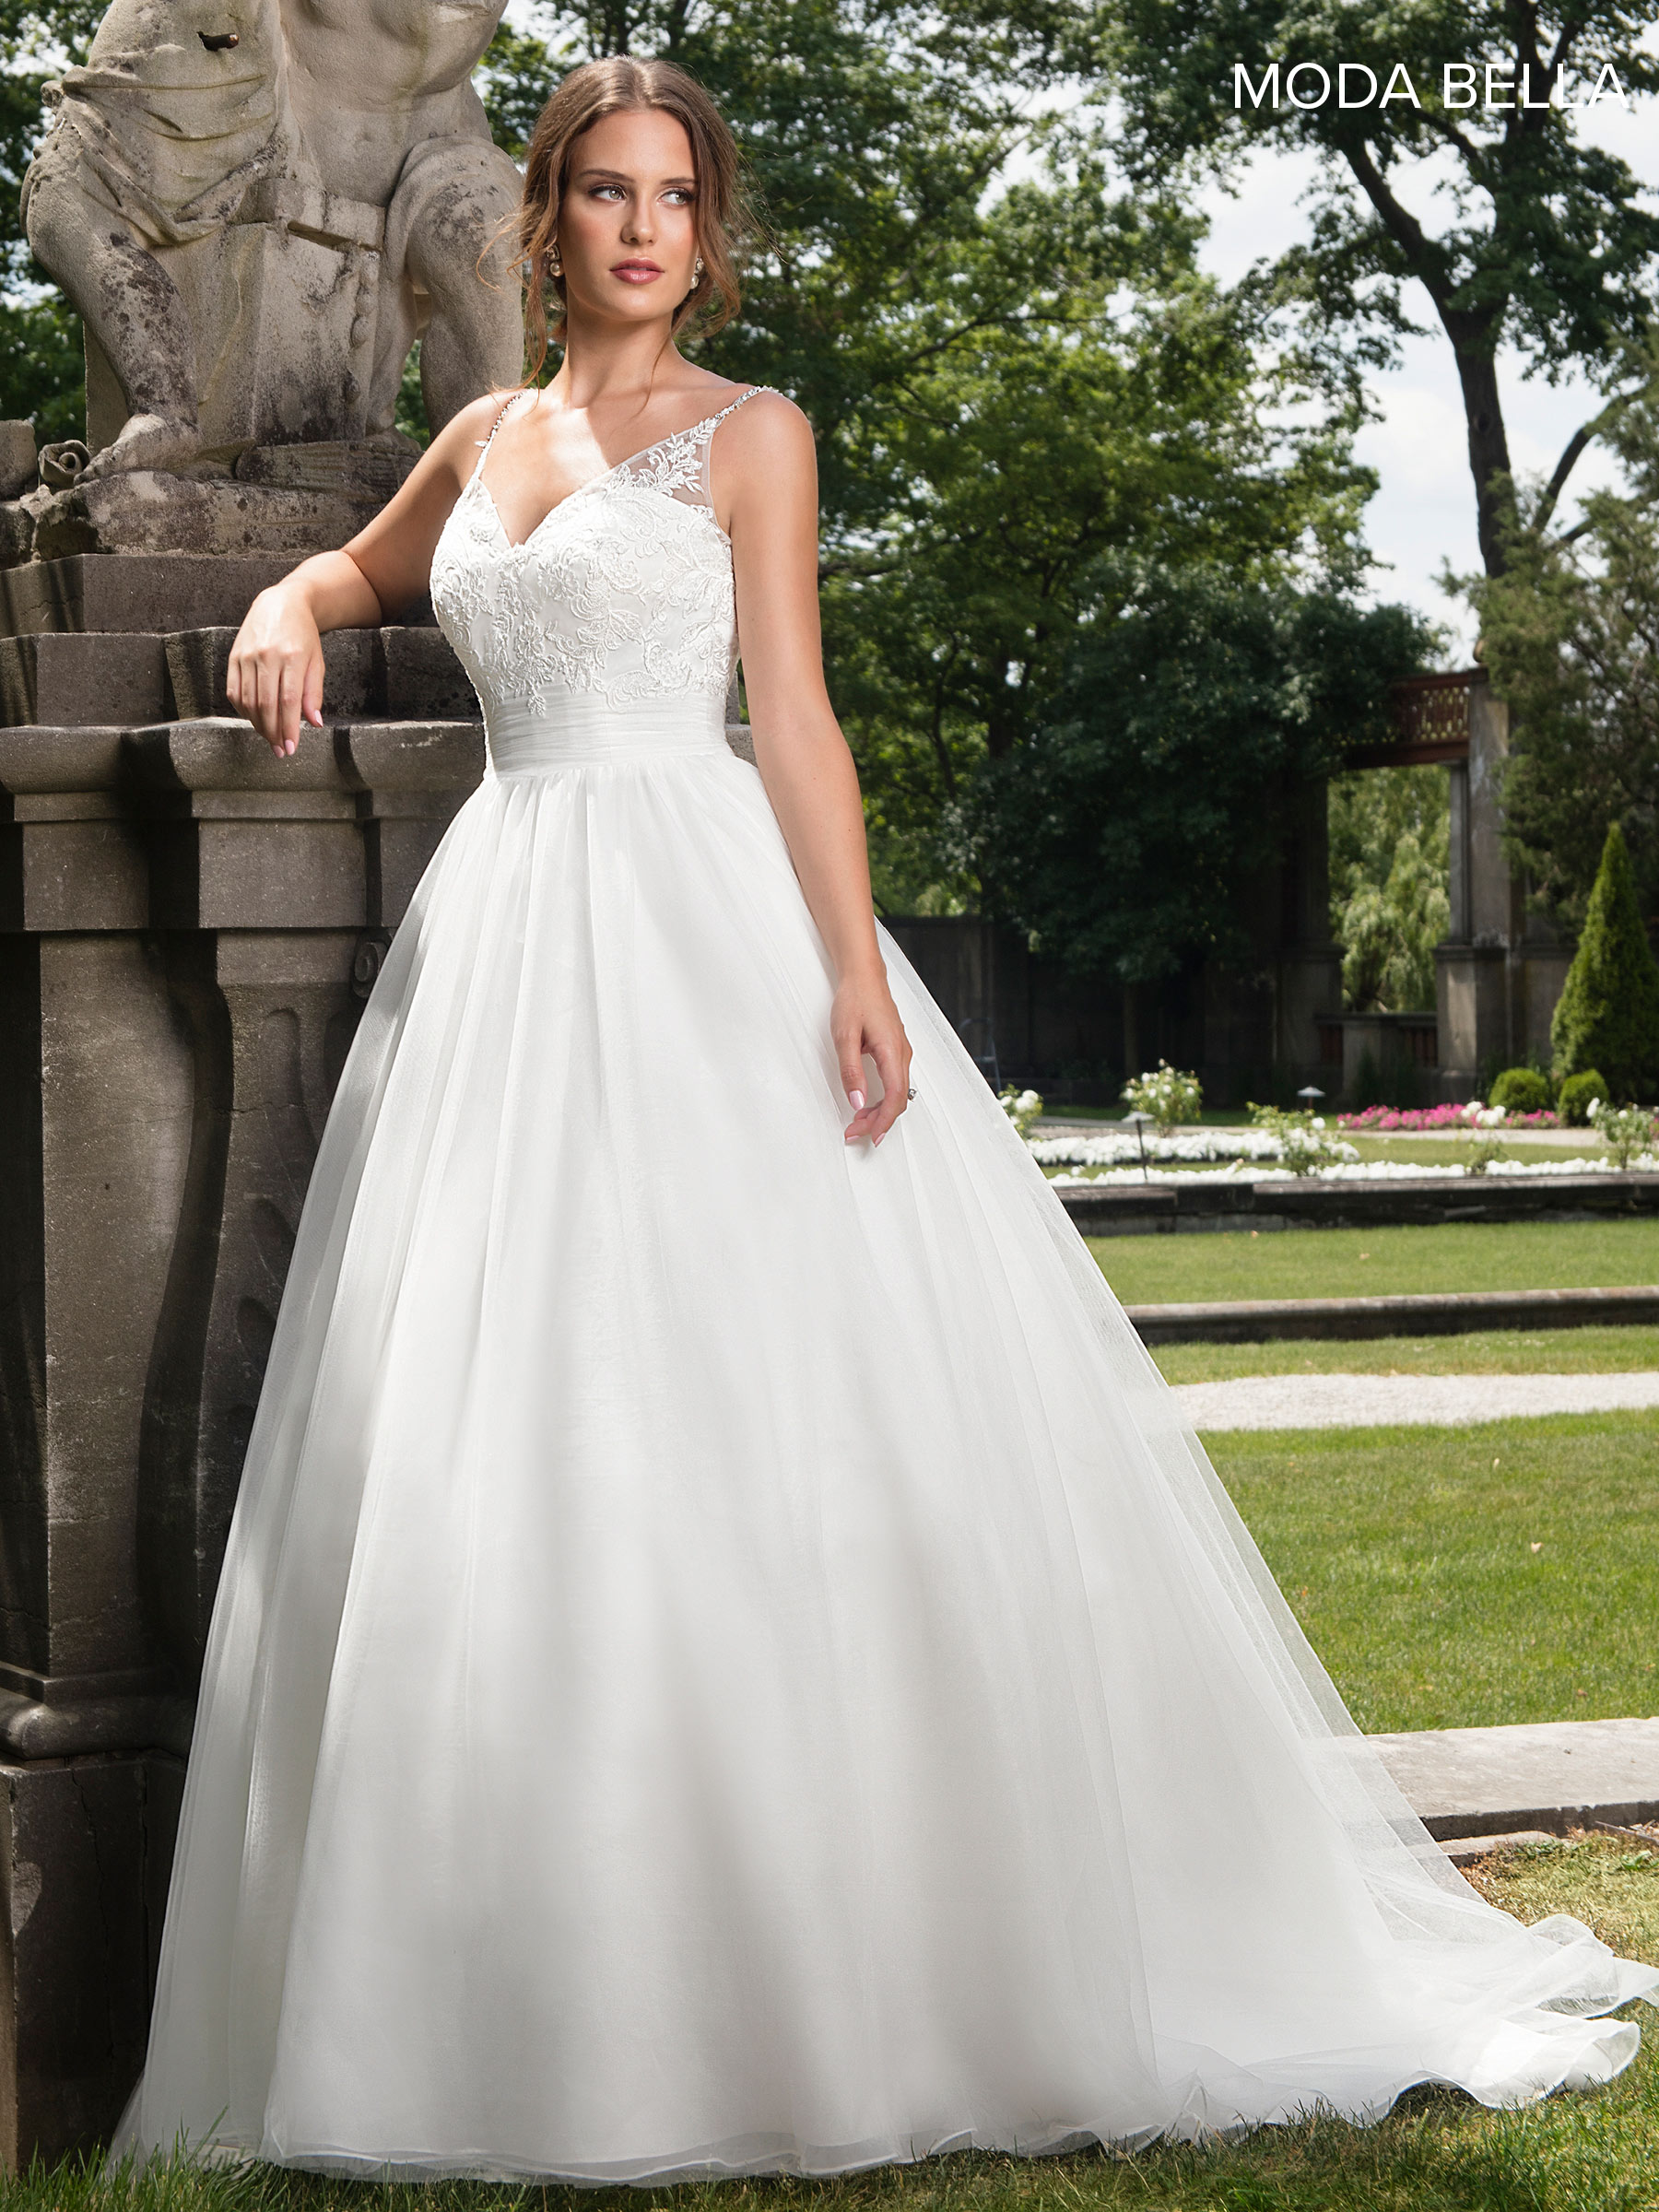 simple ivory wedding dresses bridal dresses style mb2006 in ivory or white color 7487